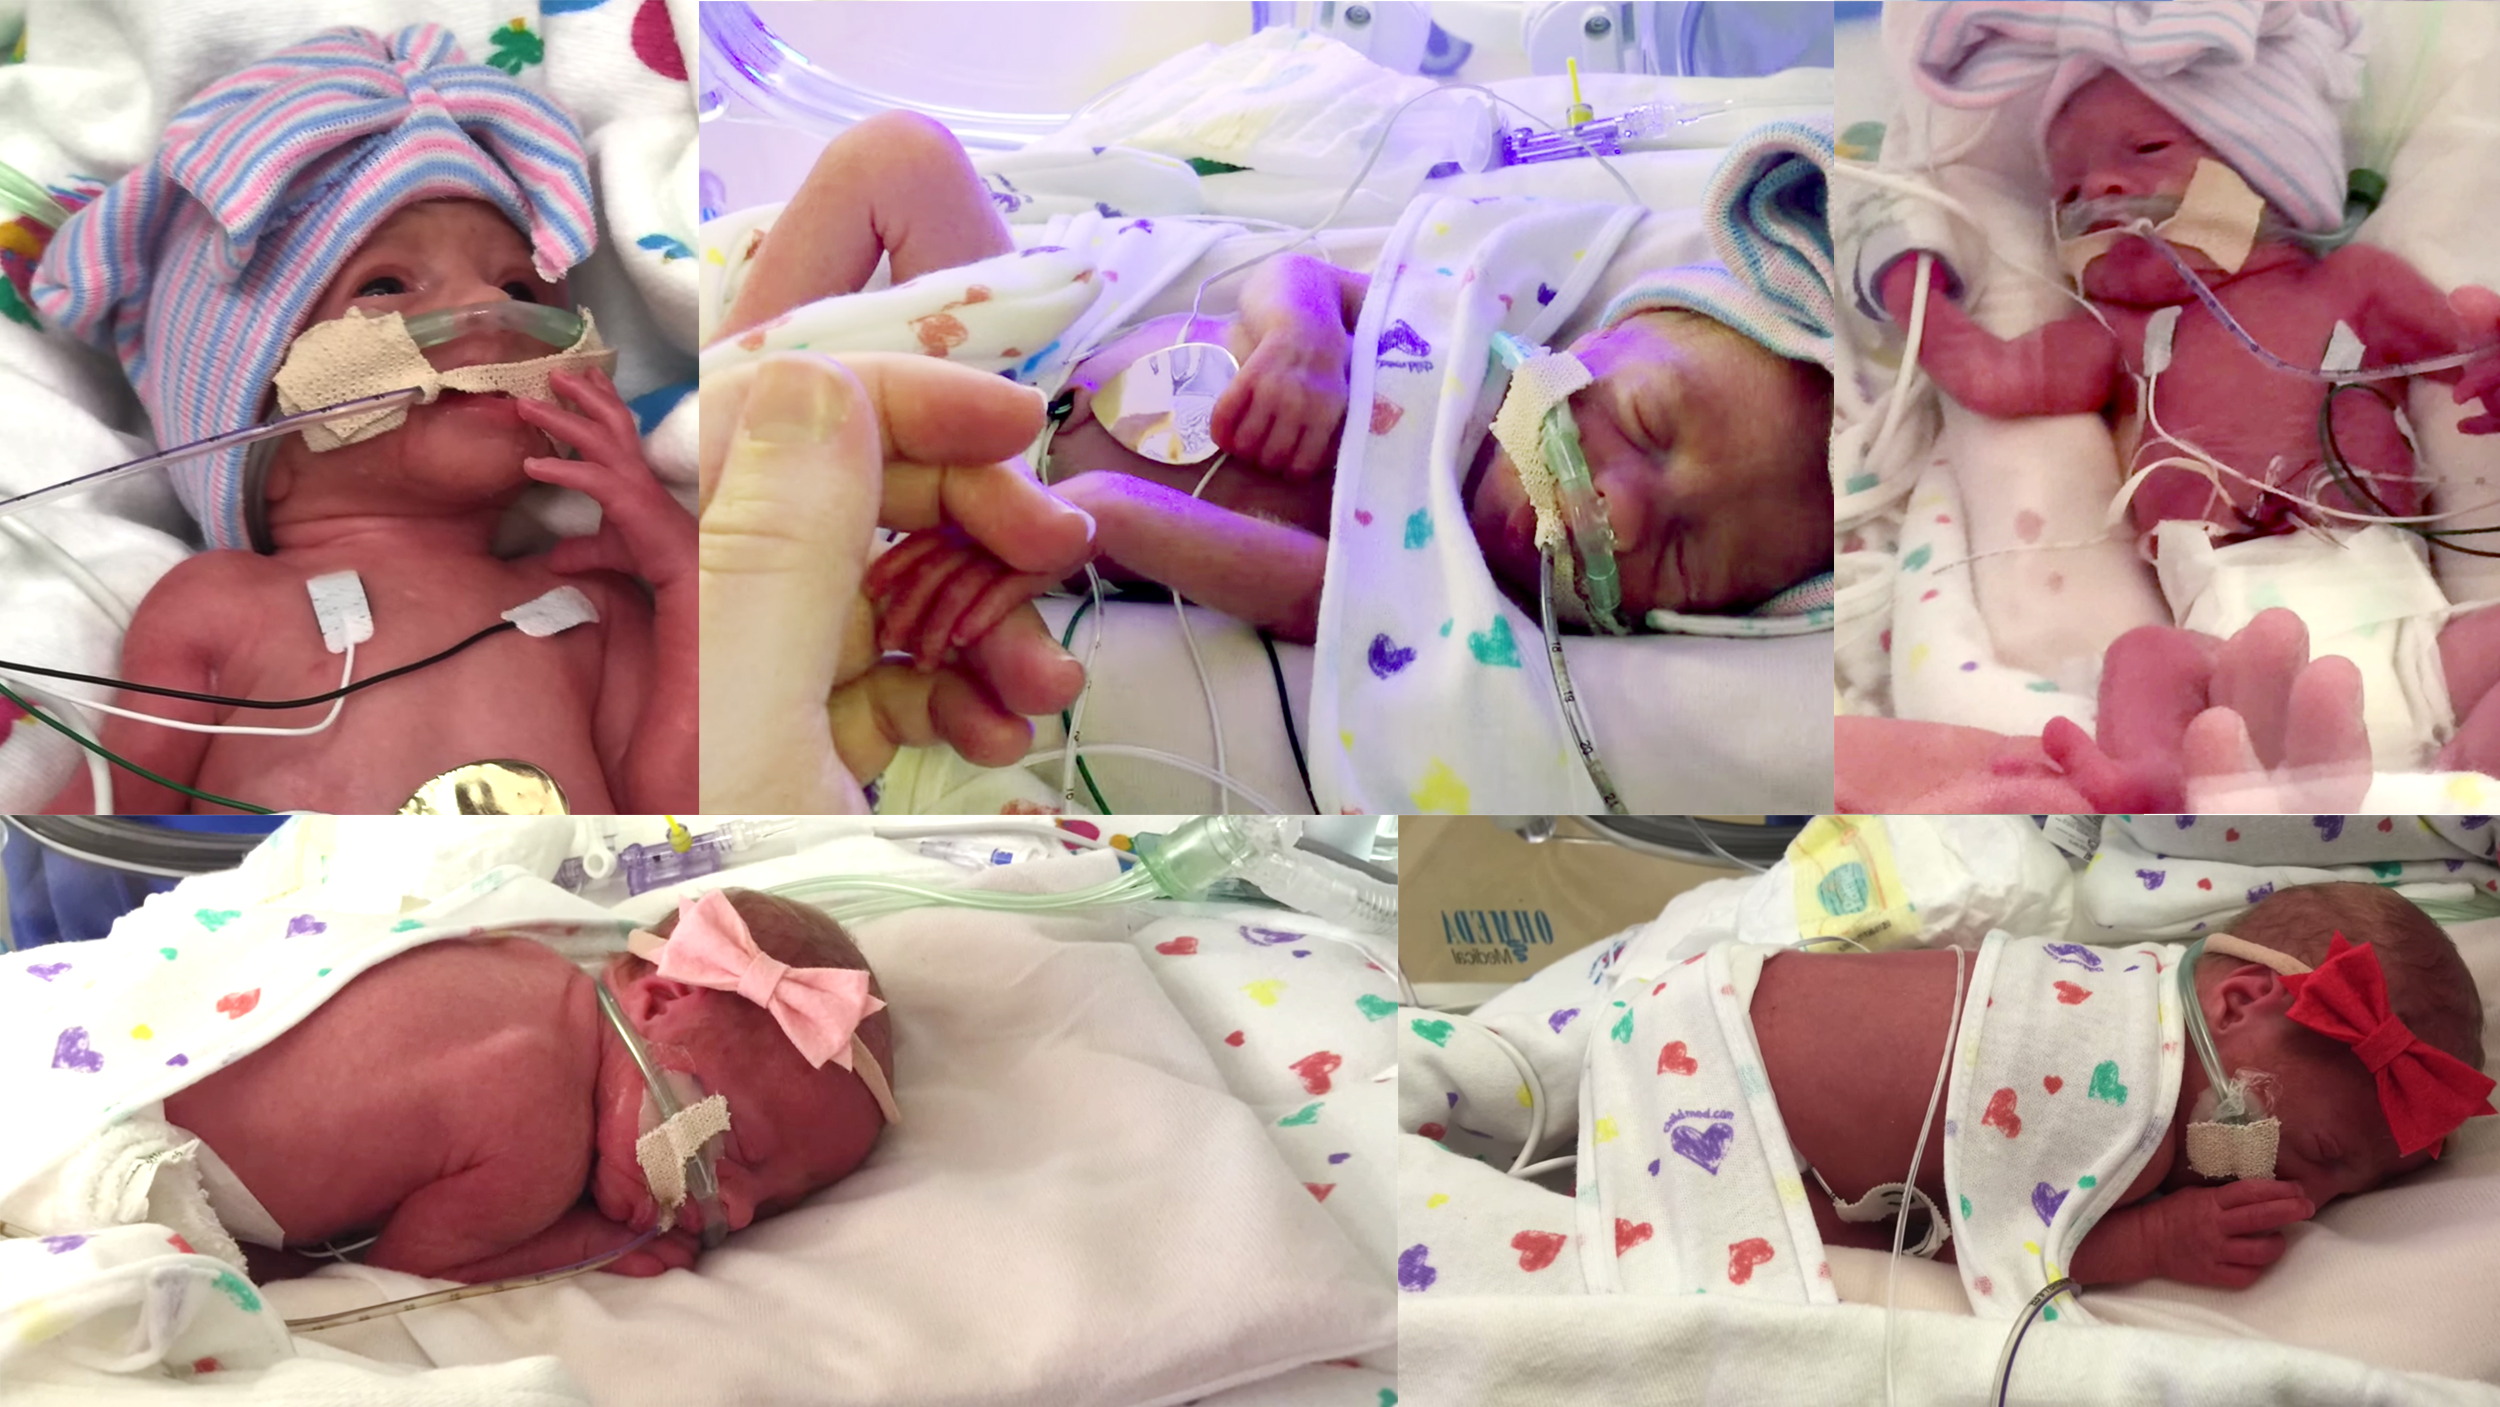 Mom of all-girl quintuplets describes holding babies for first time